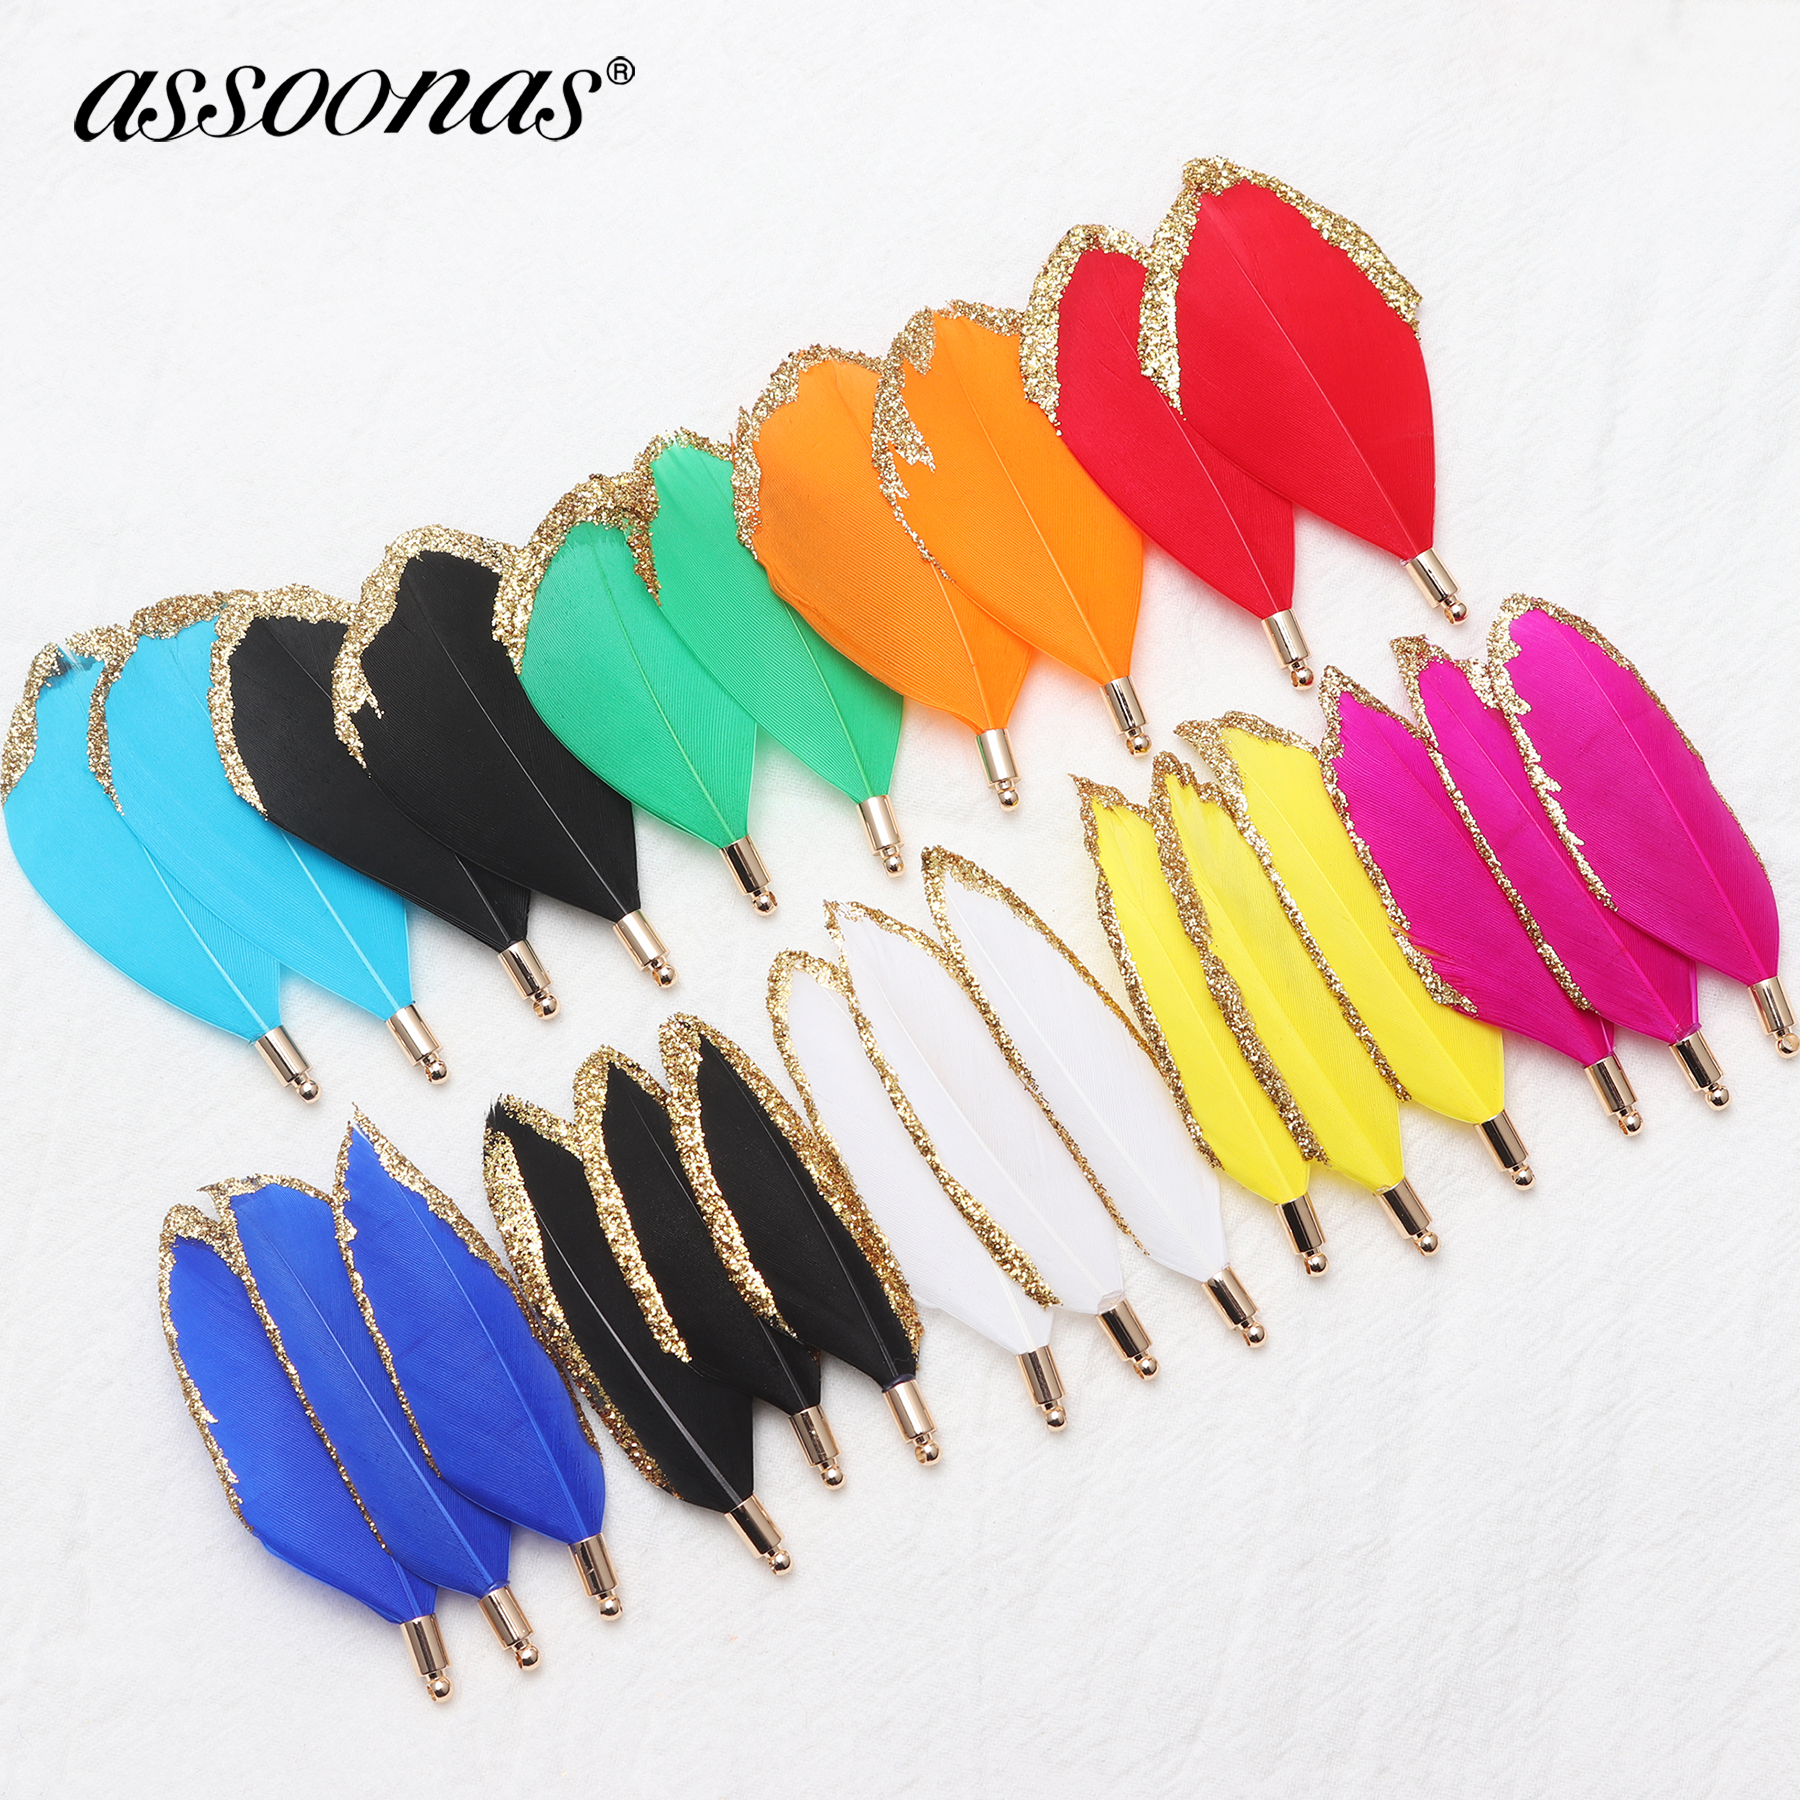 Assoonas M546,feather Accessories,jewelry Accessories,charm,hand Made,diy Earrings,jewelry Findings,jewelry Making,10pcs/lot